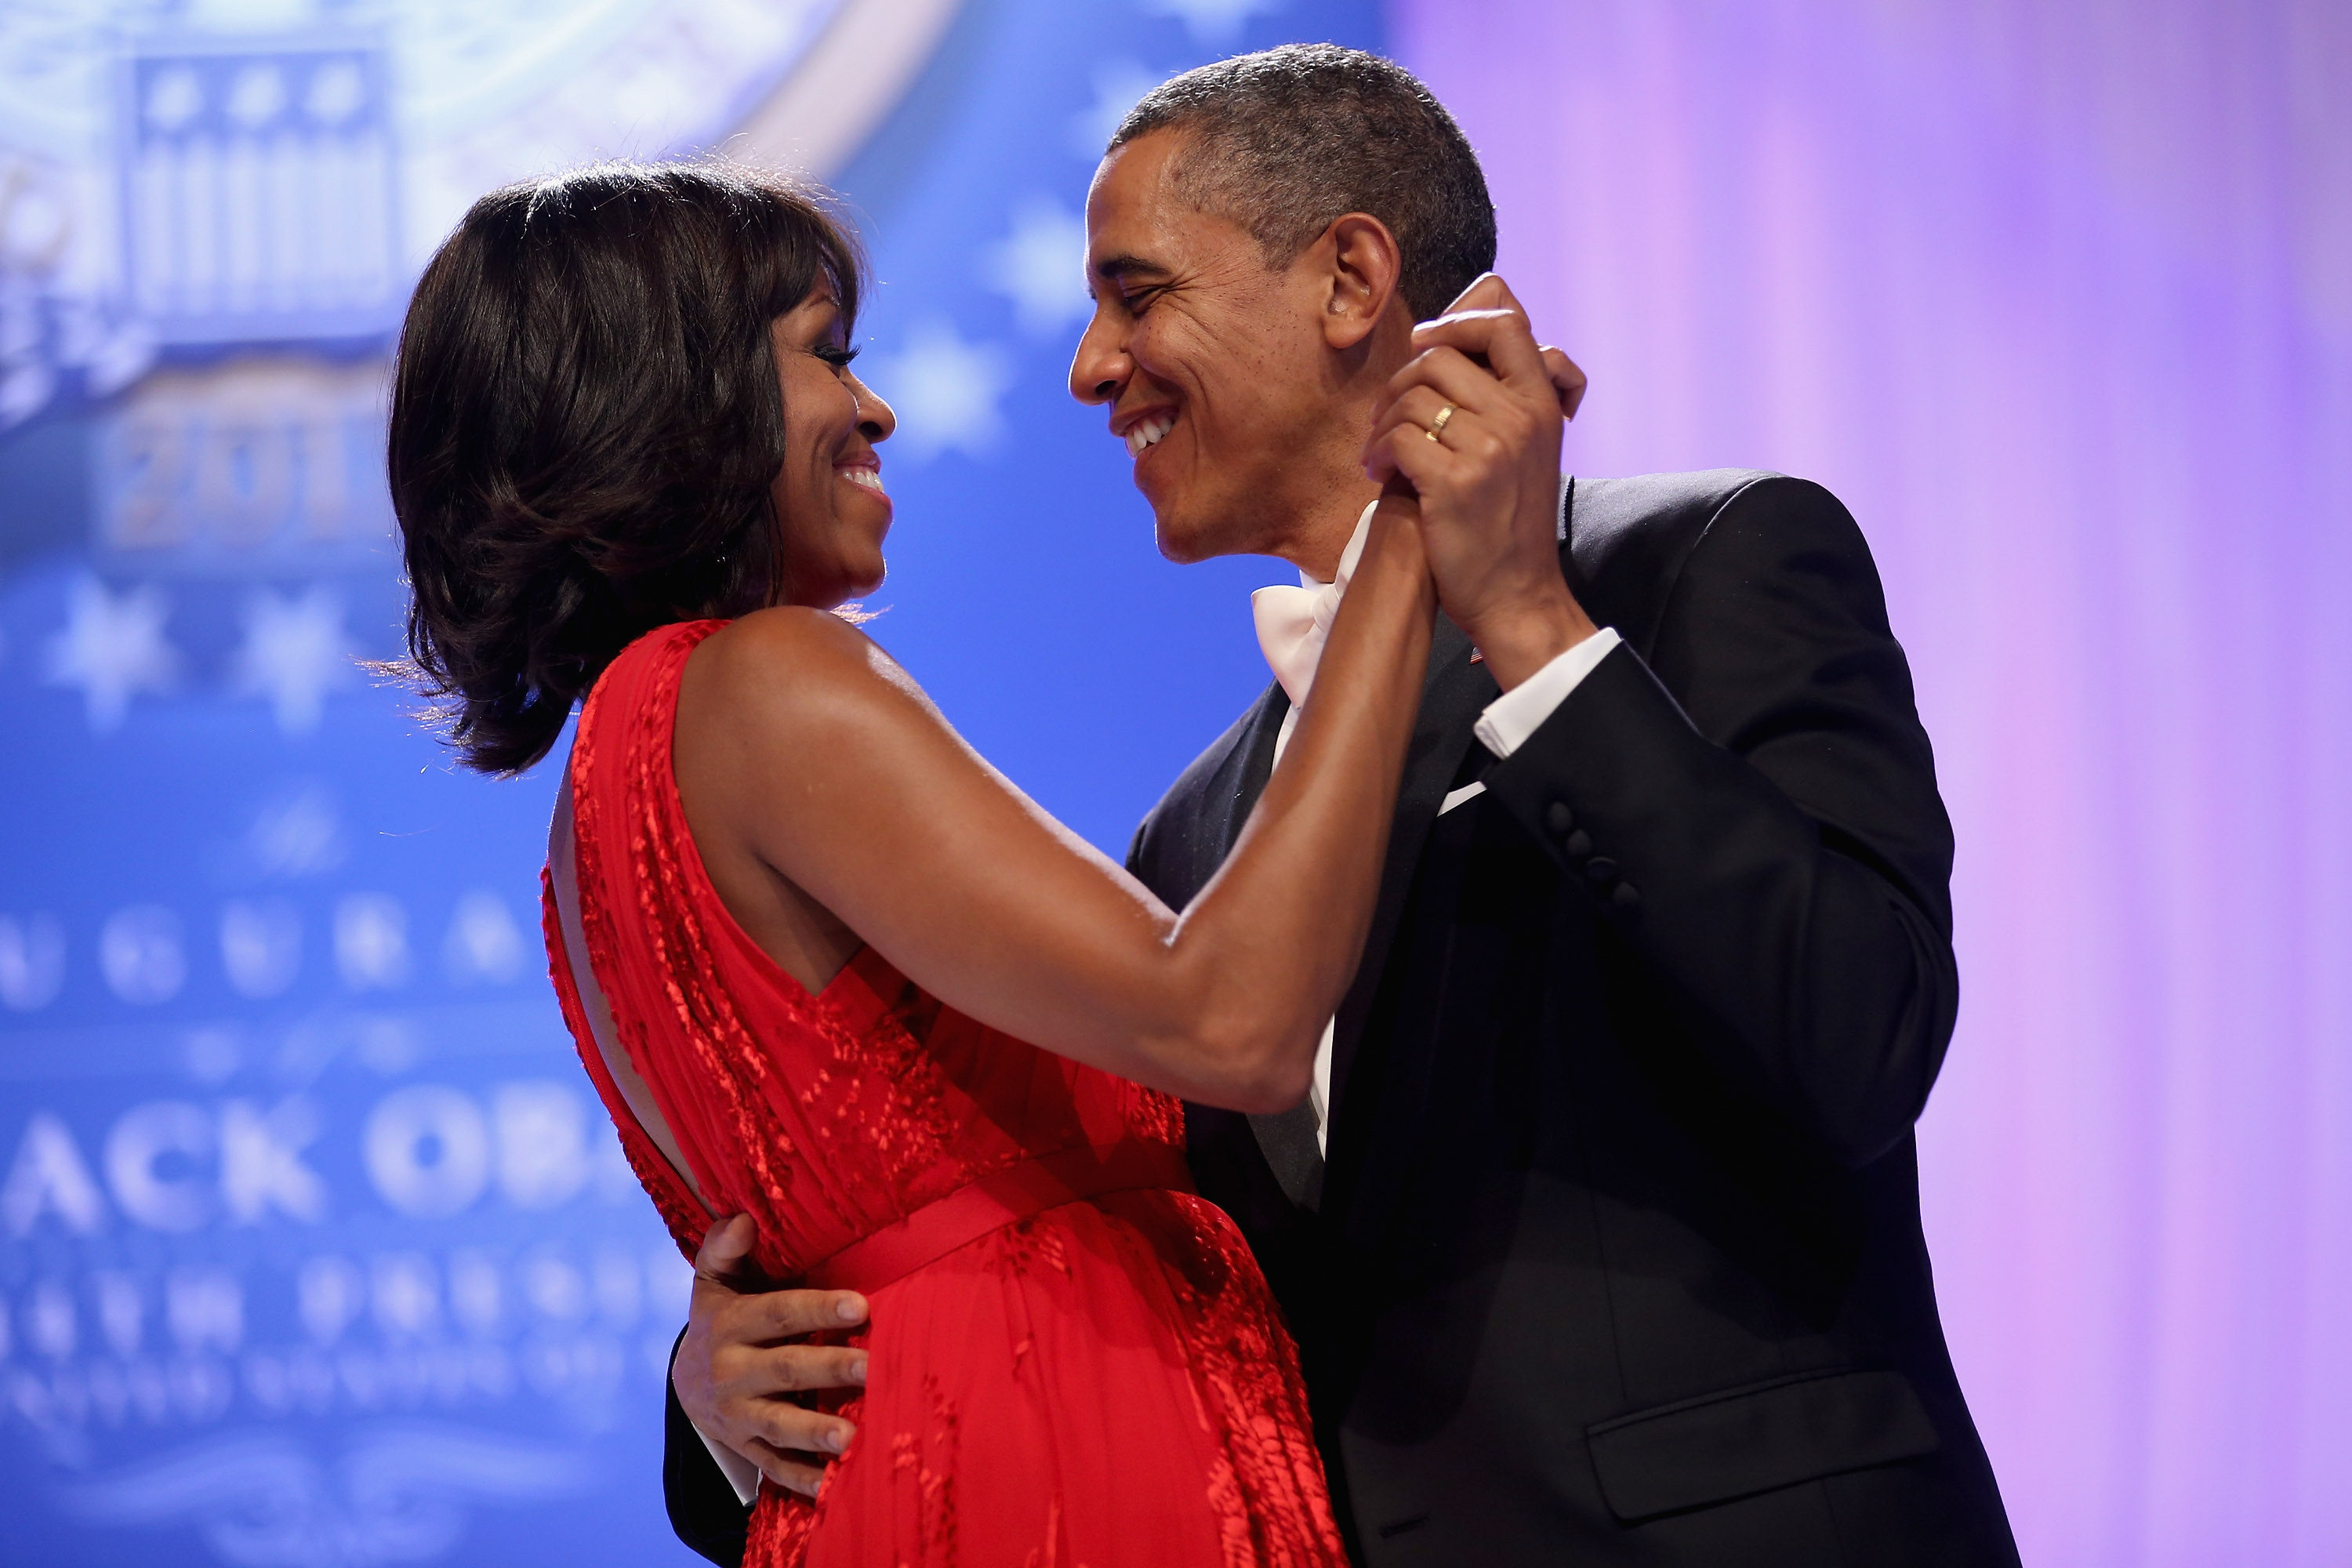 Barack and Michelle Obama dancing in fancy dress at an inauguration ball